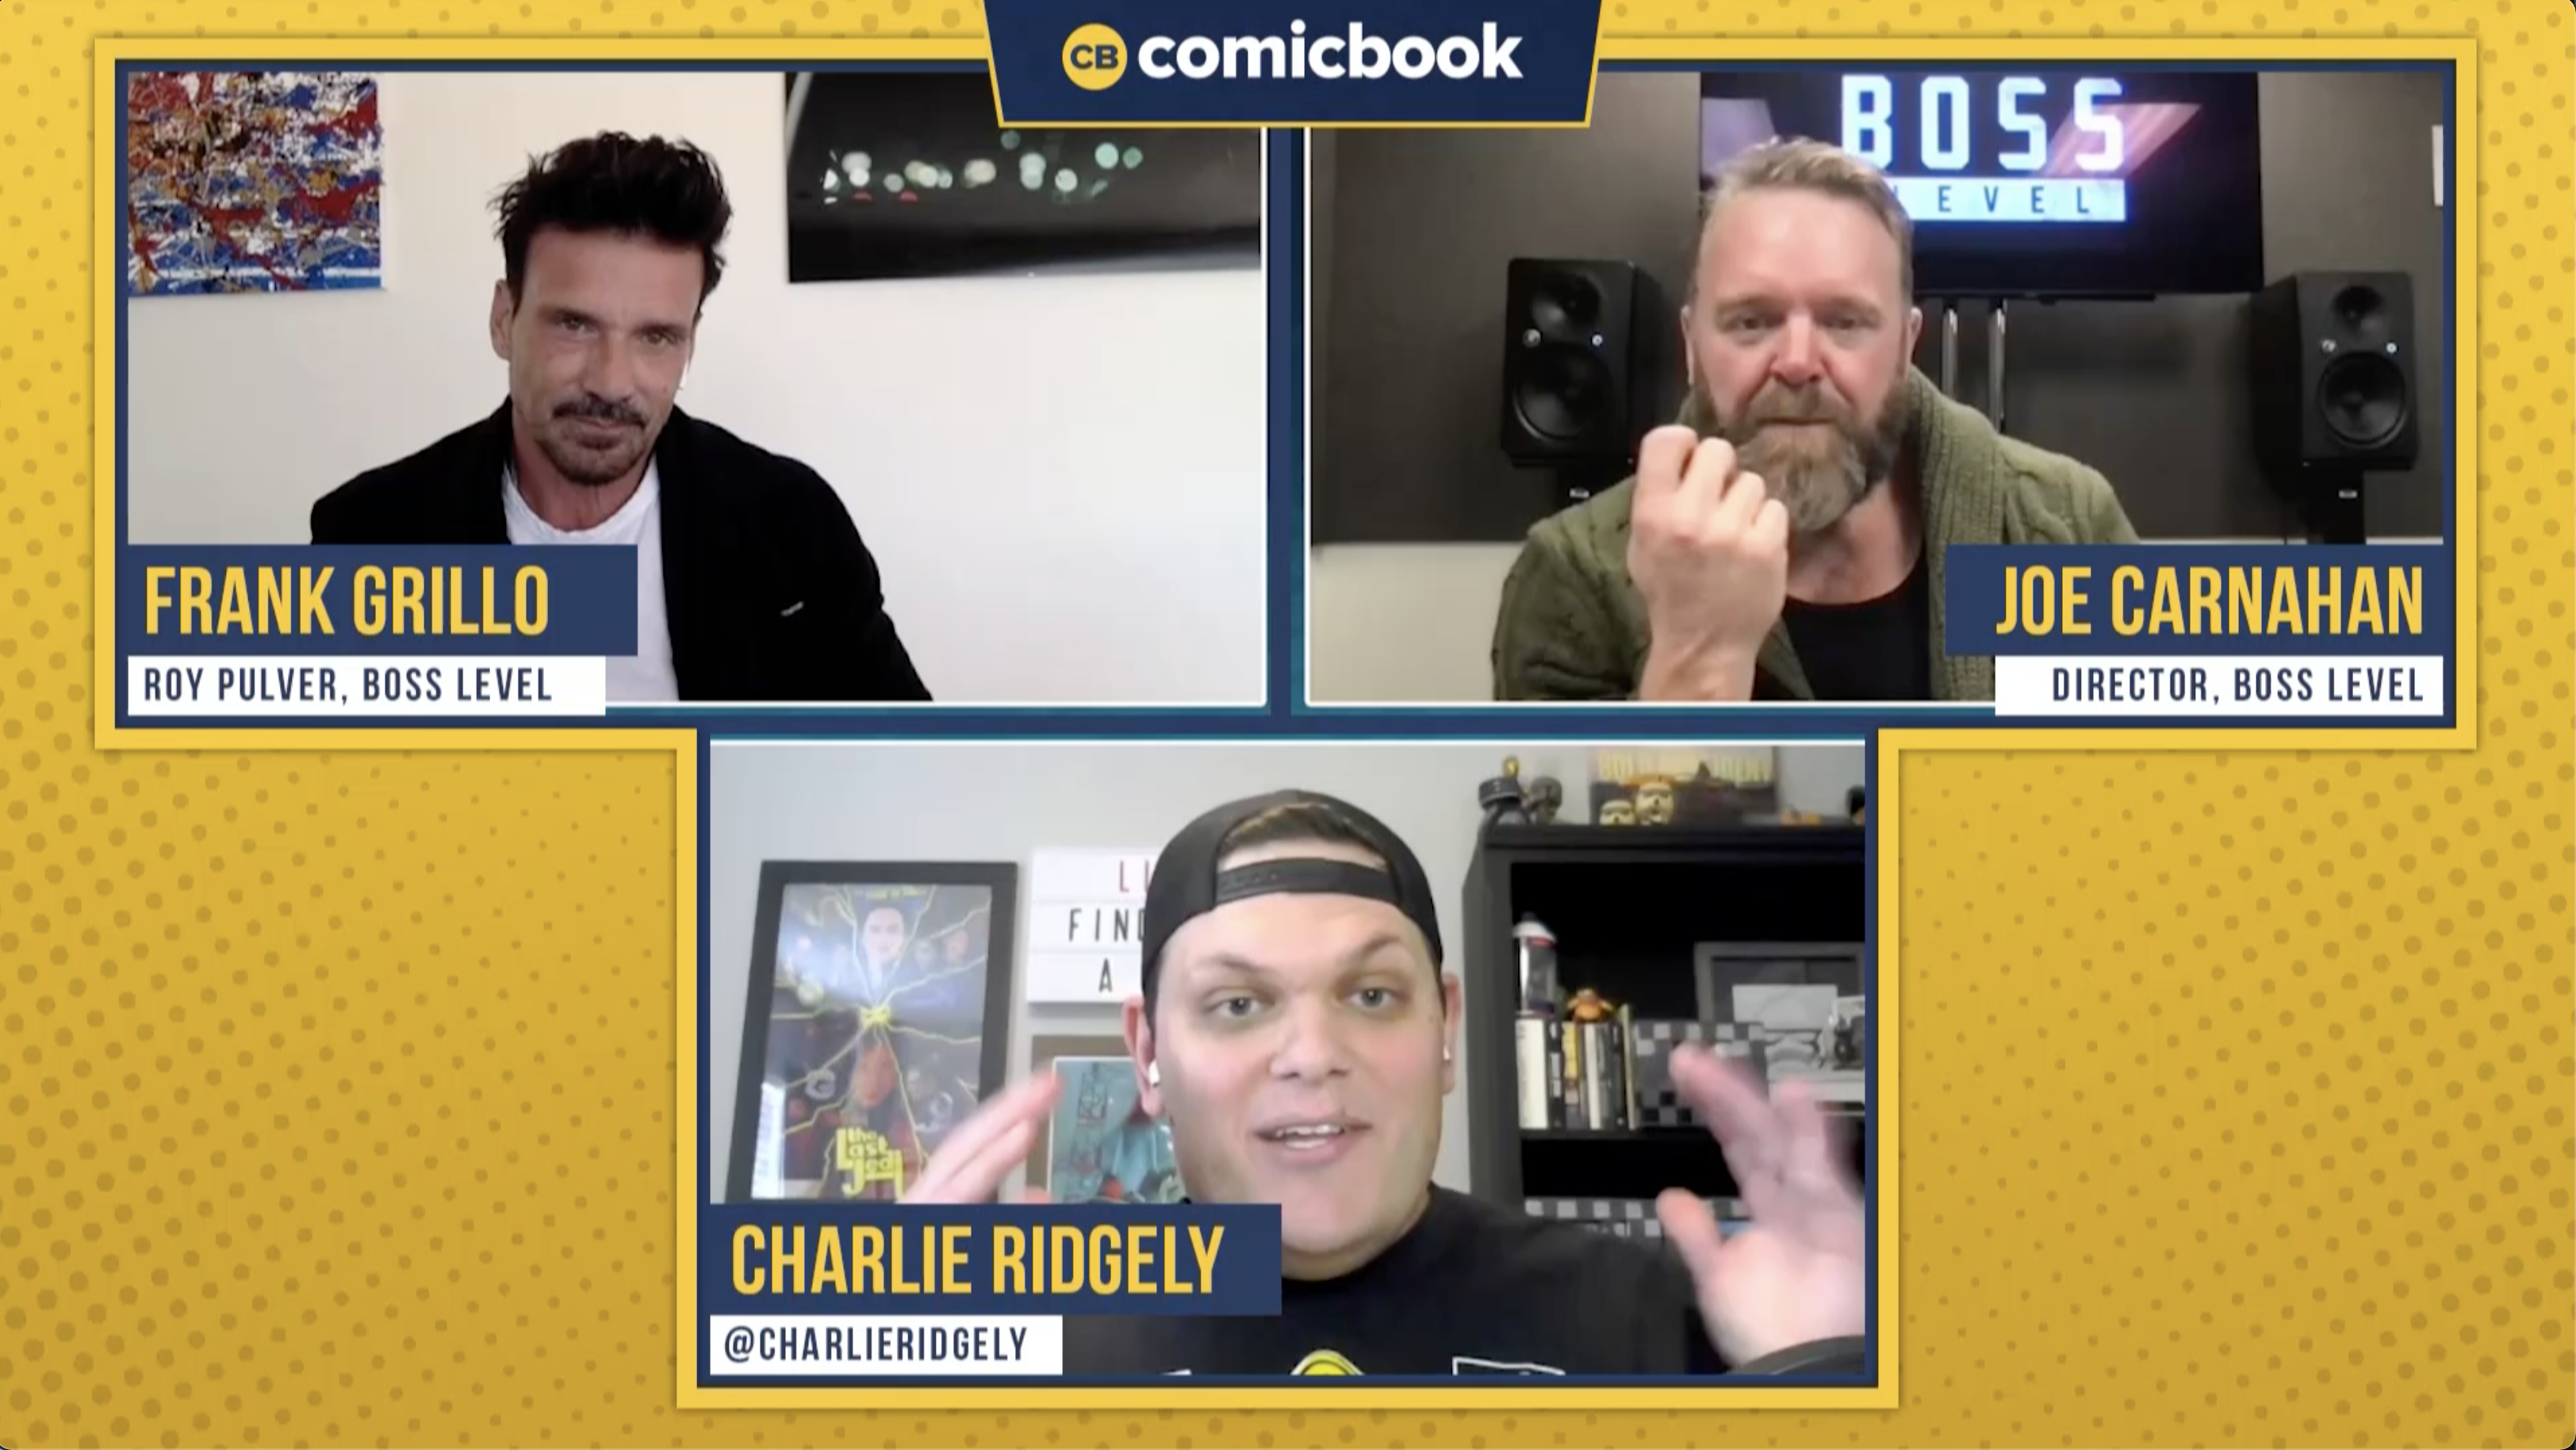 Joe Carnahan and Frank Grillo Talk Boss Level - Exclusive Comicbook.com Interview